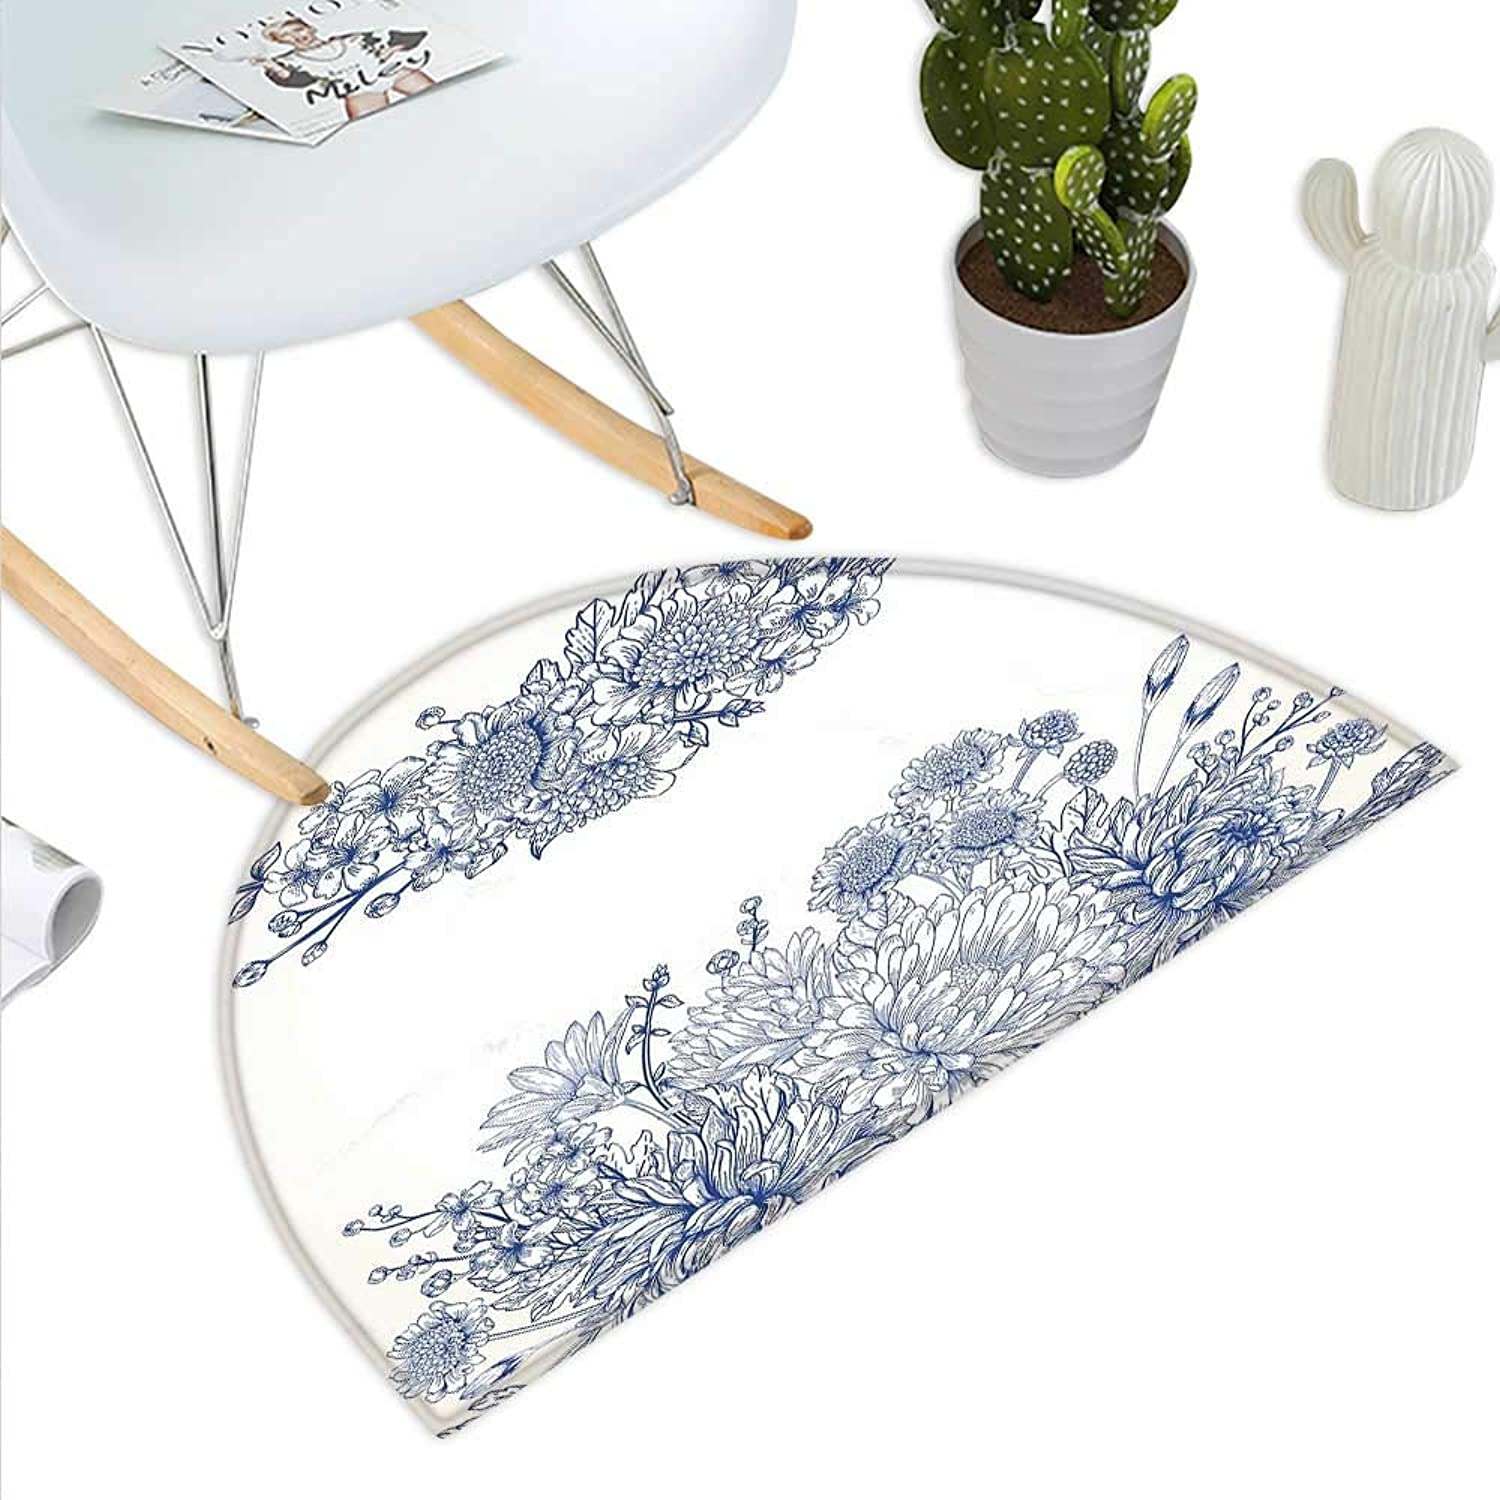 bluee Semicircle Doormat Artistic Floral Bouquet Corsage Carnations Chamomiles Bridal Wedding Anniversary Theme Halfmoon doormats H 35.4  xD 53.1  bluee White